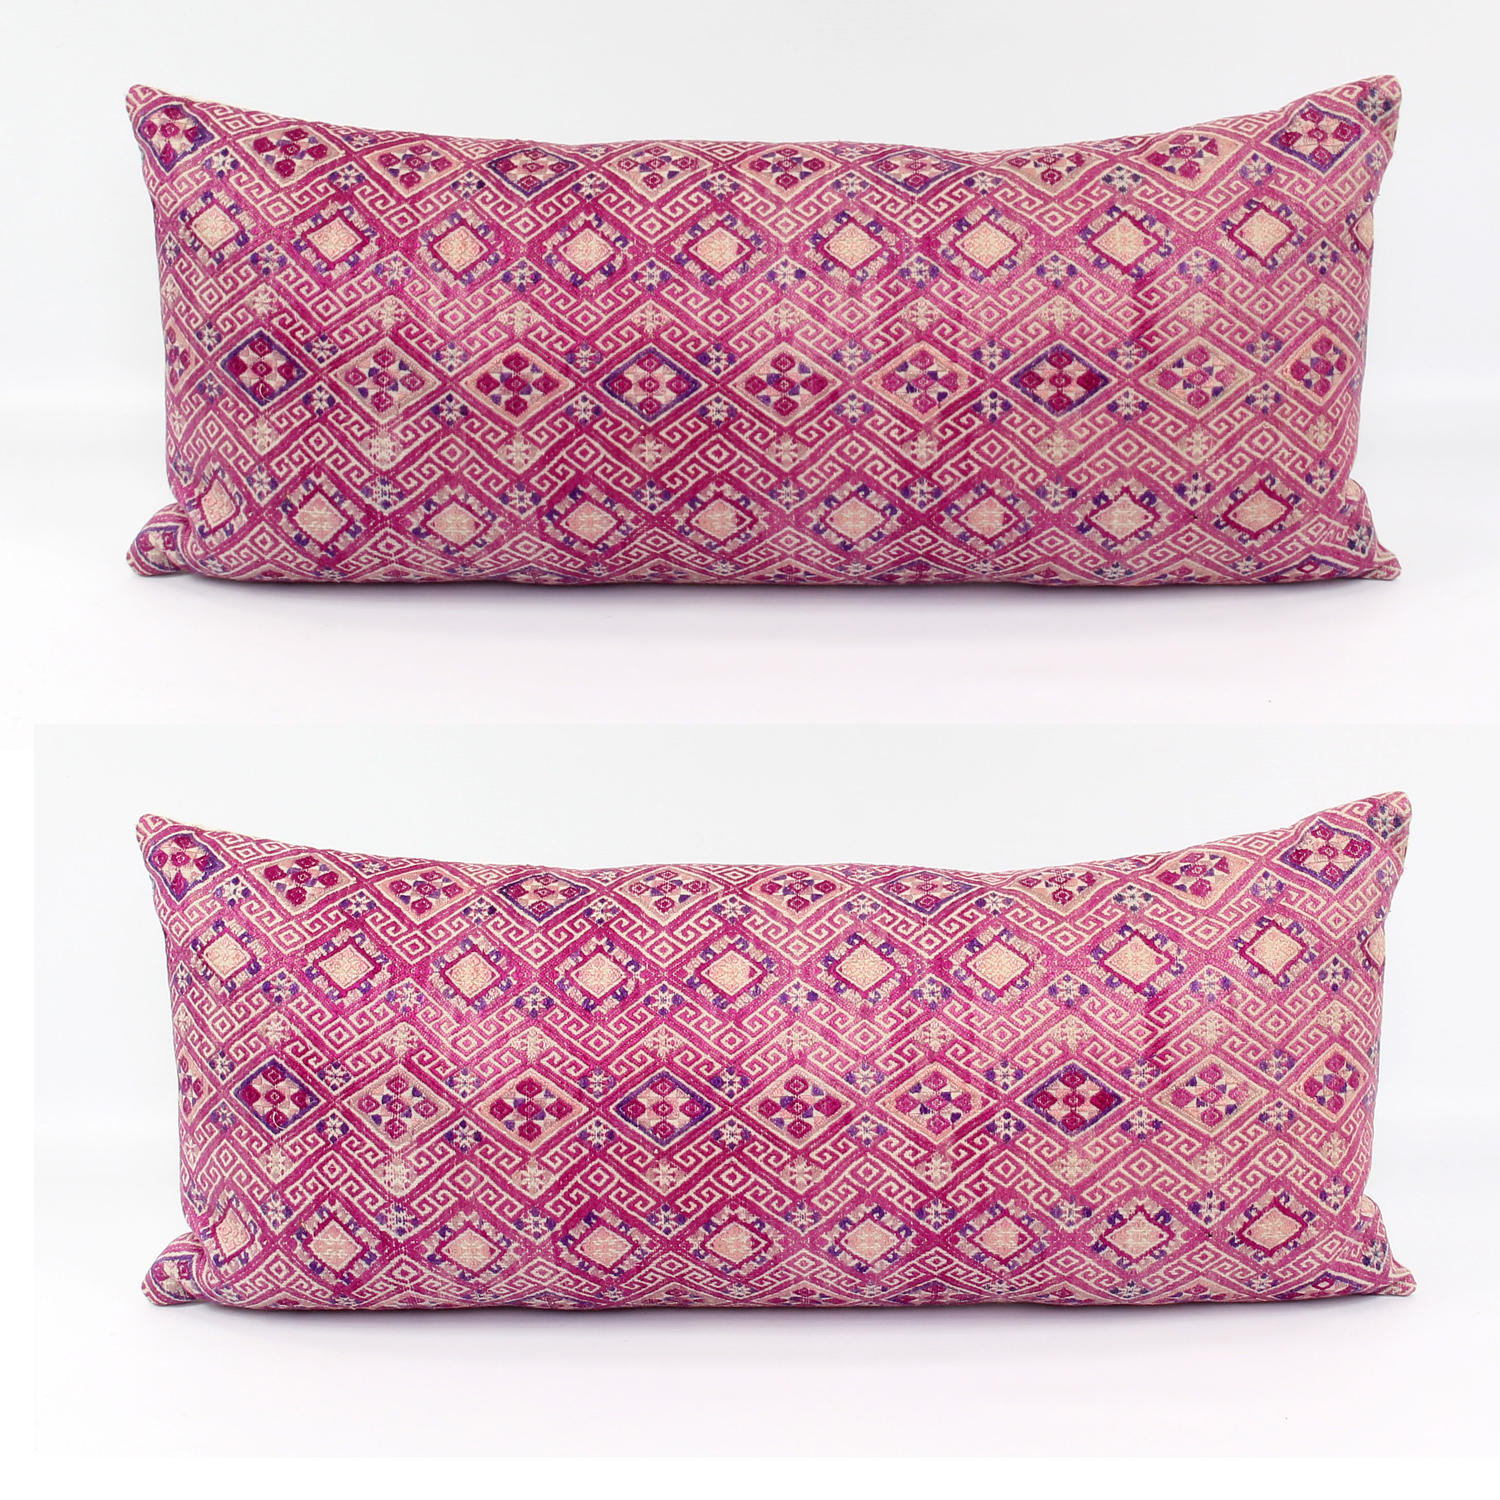 Stunning Pink Silk Wedding Blanket Cushions